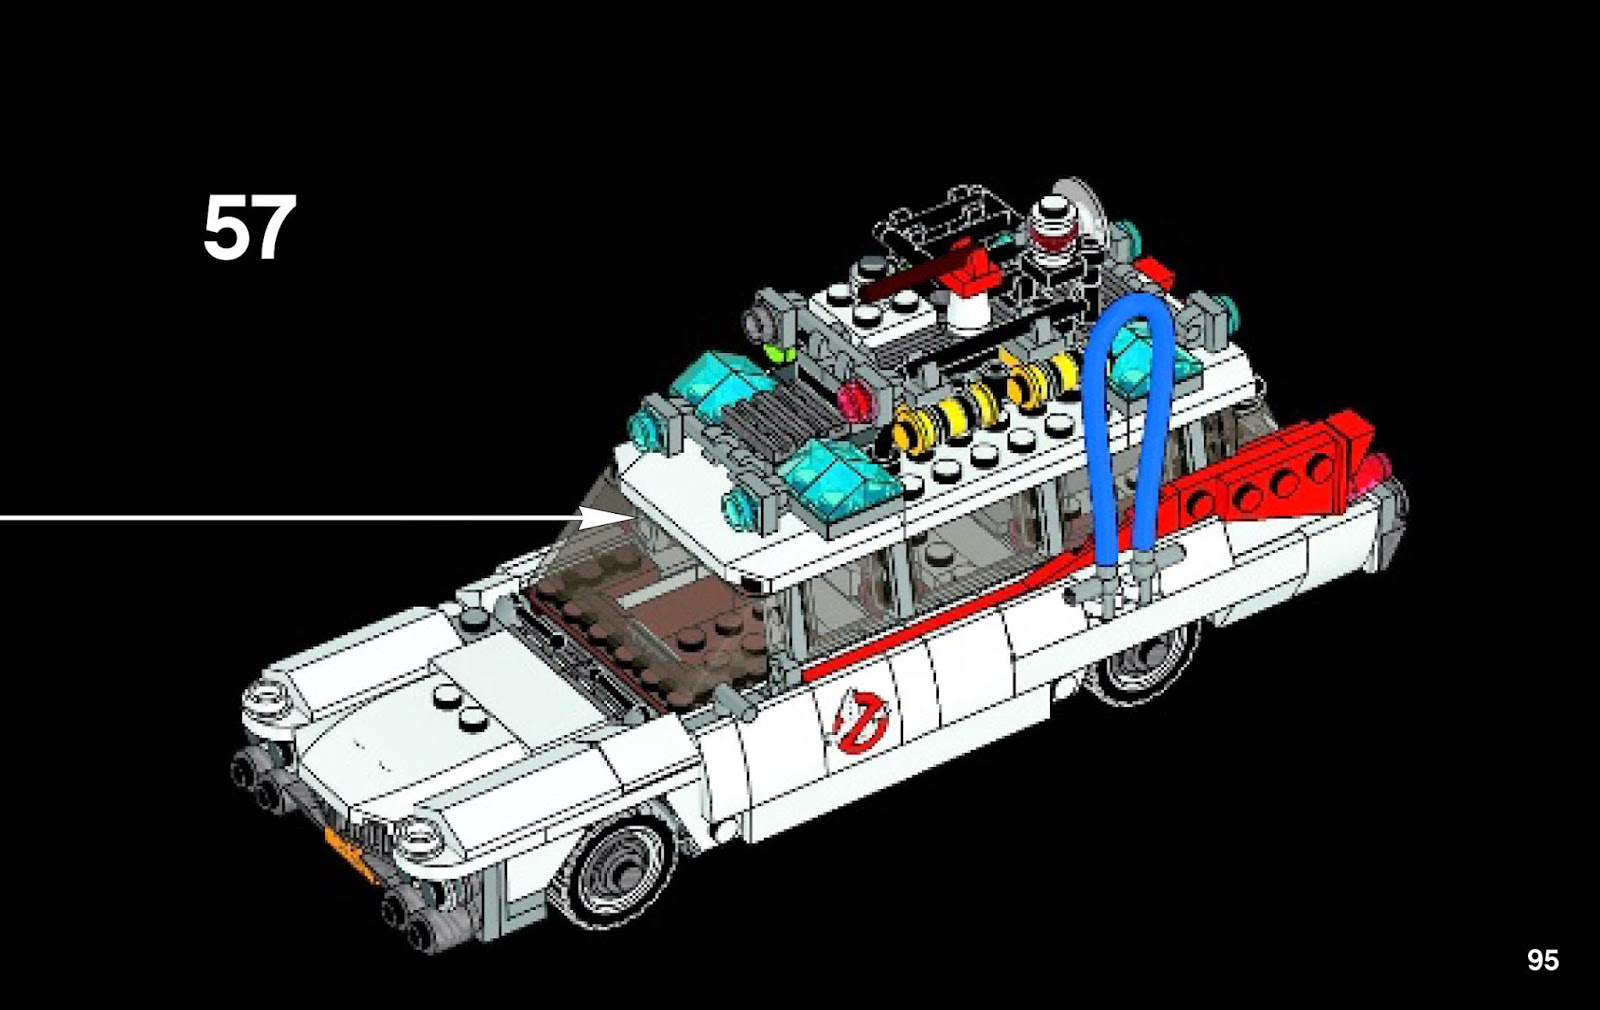 techfleet spot lego 21108 ghostbusters ecto 1 lego ideas build instructions. Black Bedroom Furniture Sets. Home Design Ideas